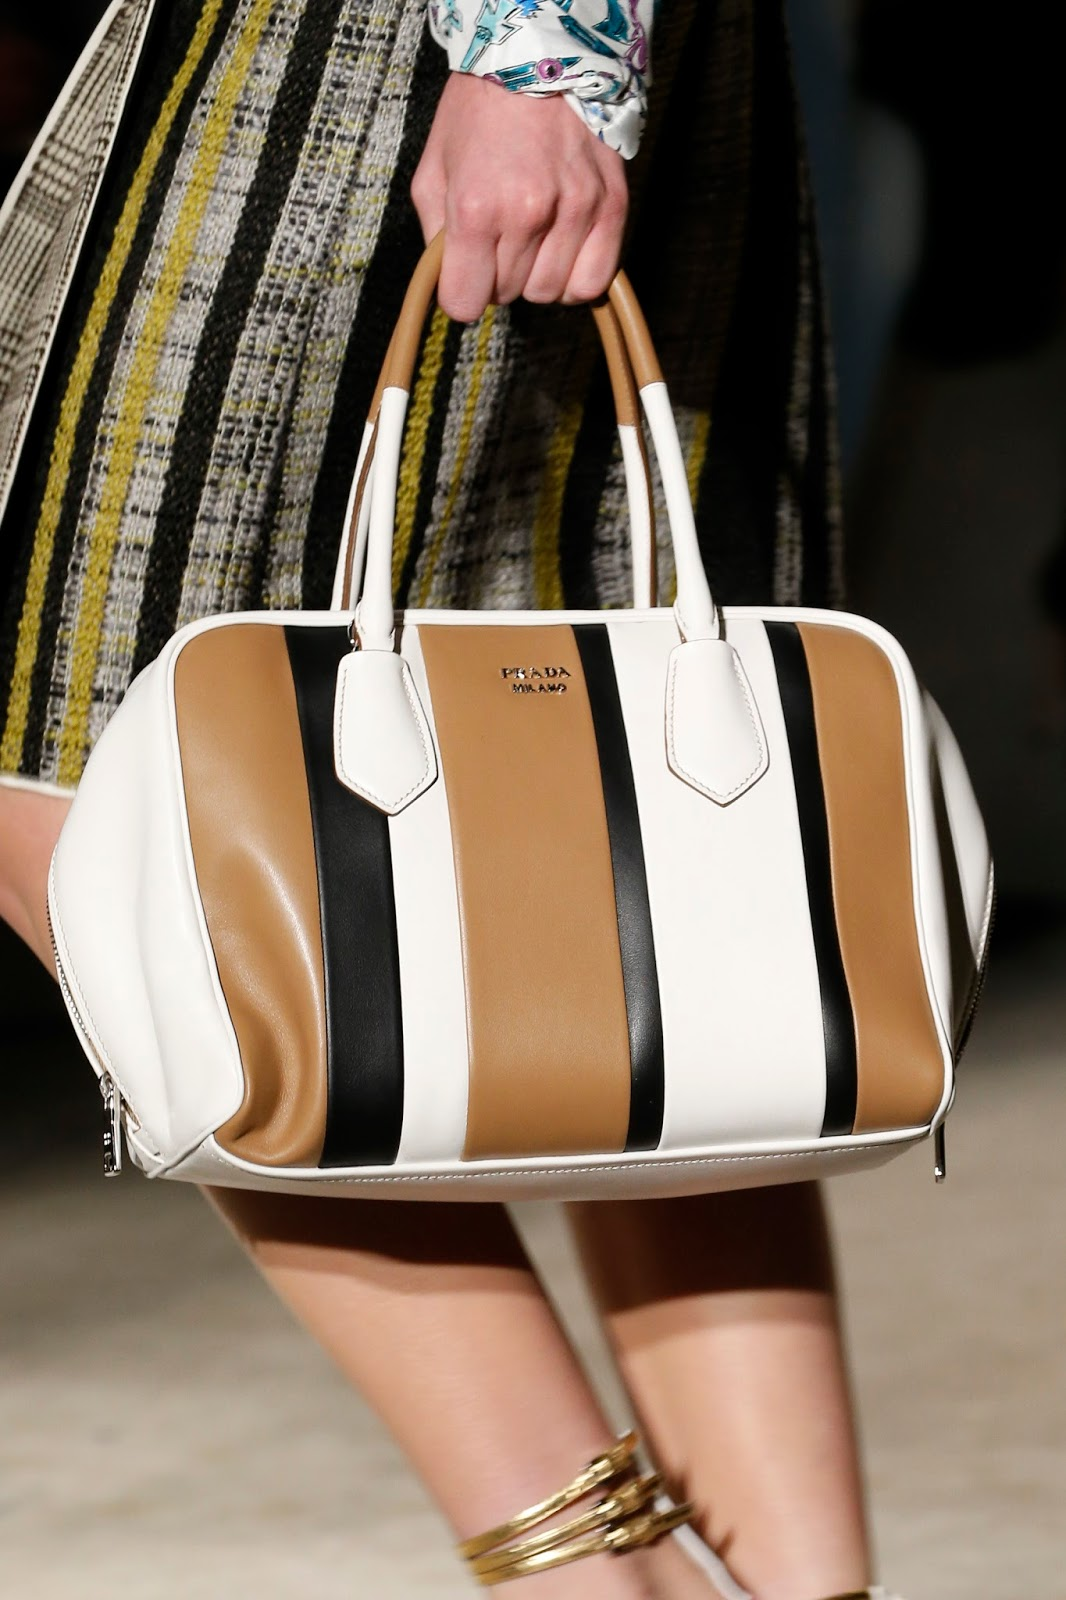 ... norway hello new arrivals mfw prada ss16 runway and bags report bf0a8  87723 e5cf56d88b0b8